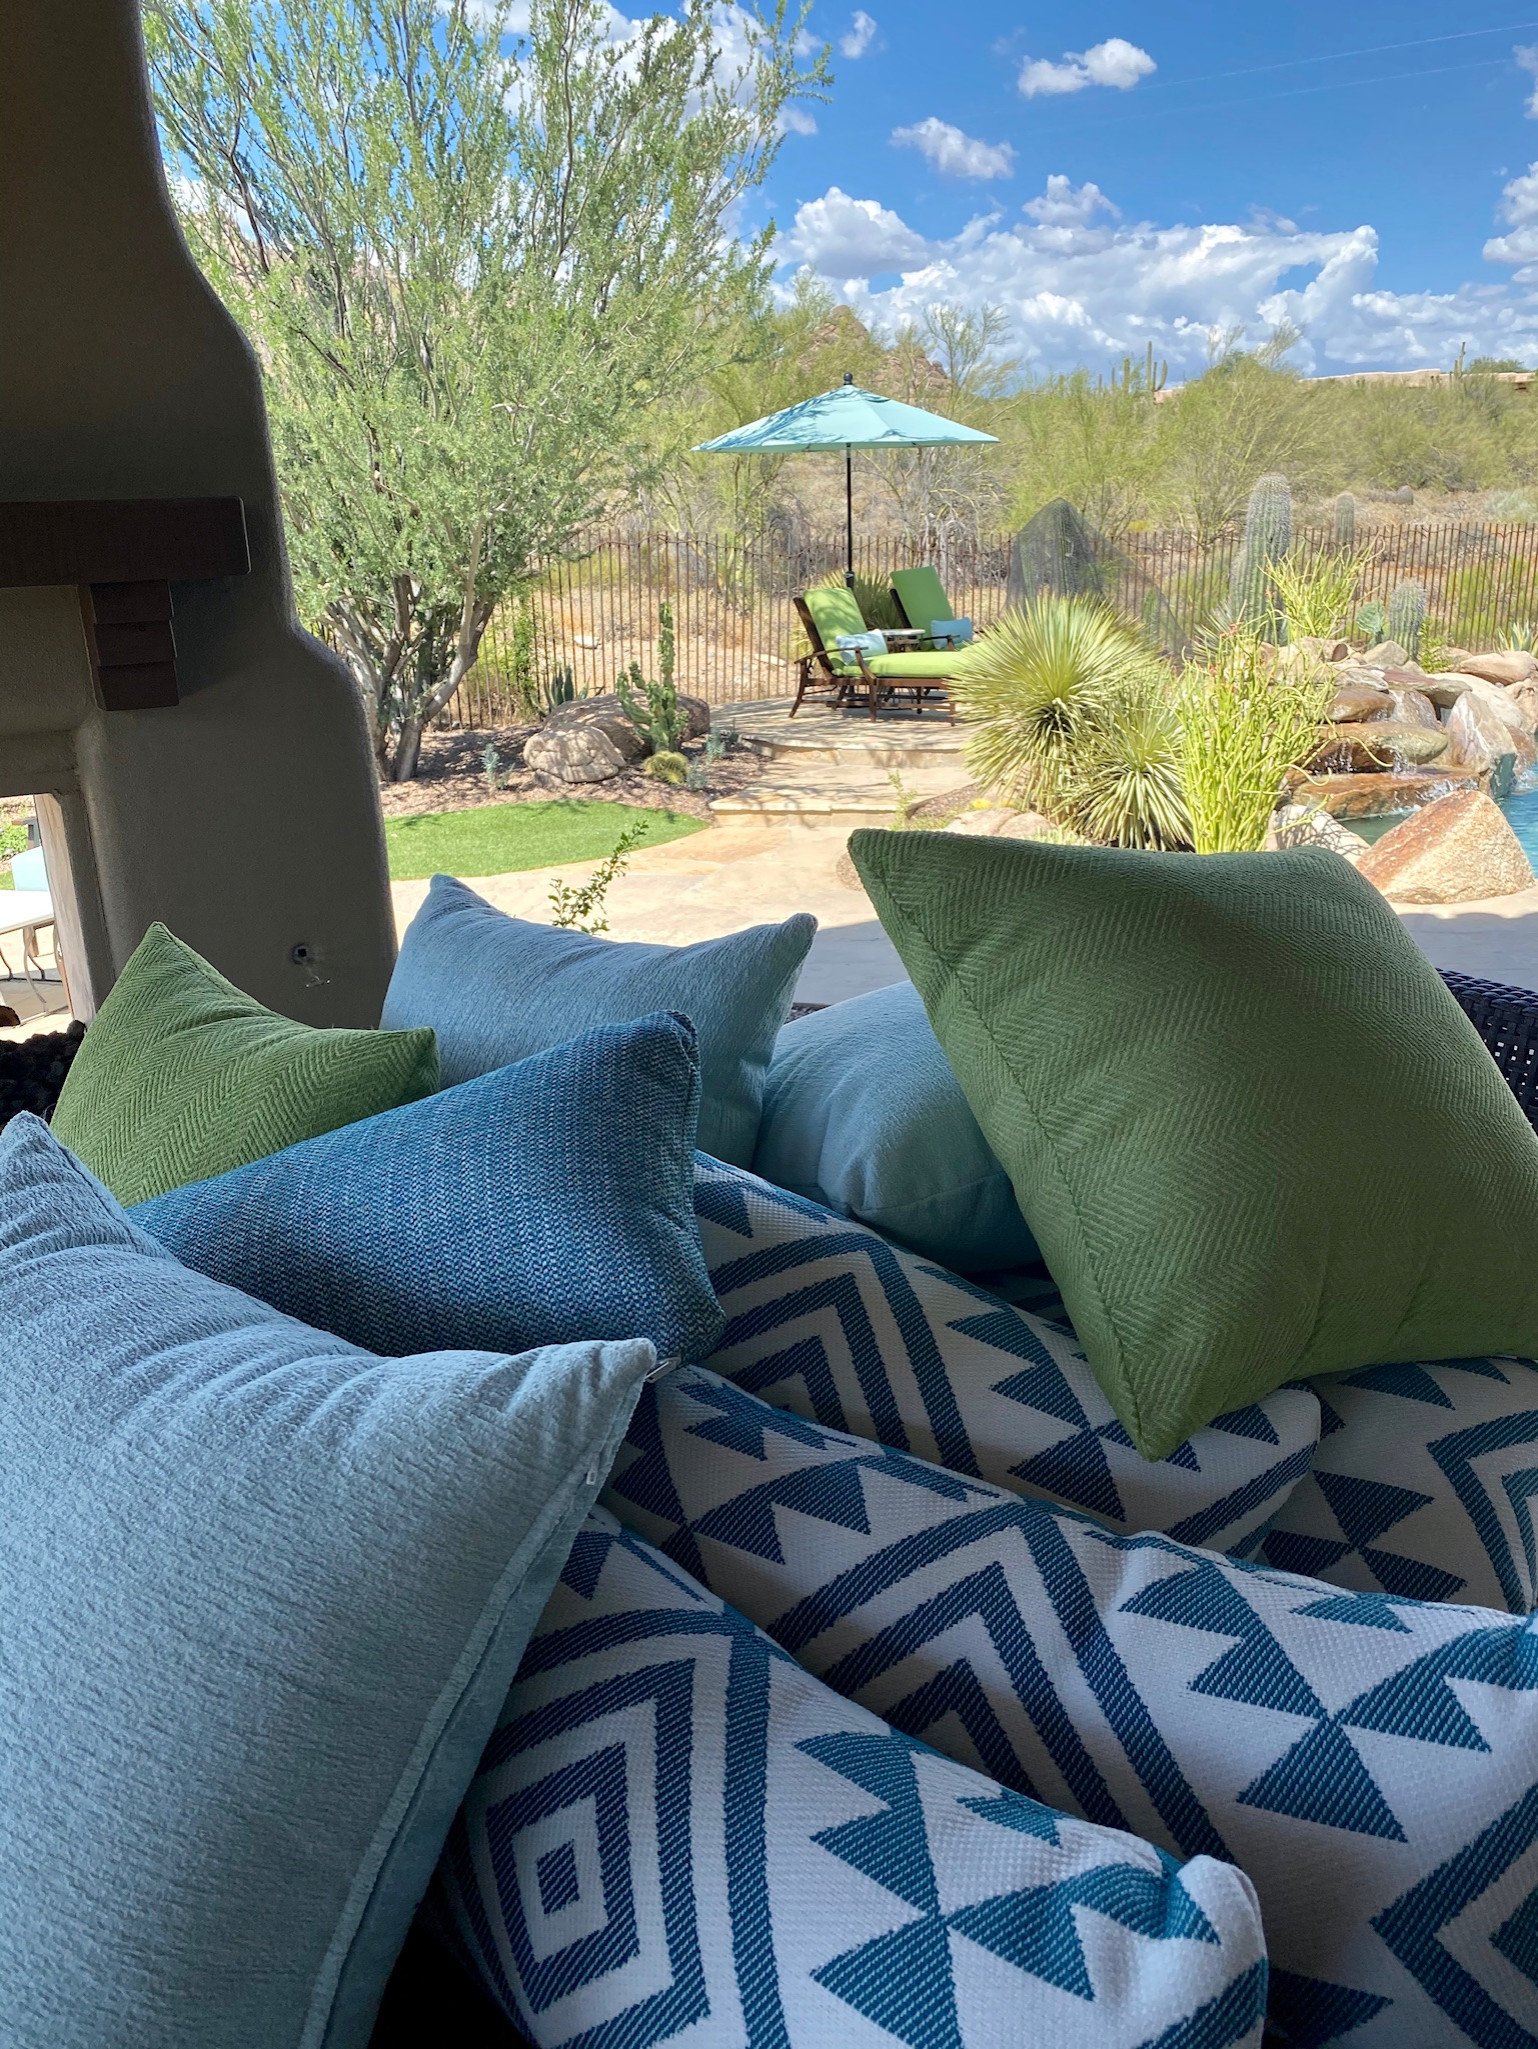 Inspiration for a transitional home design remodel in Phoenix